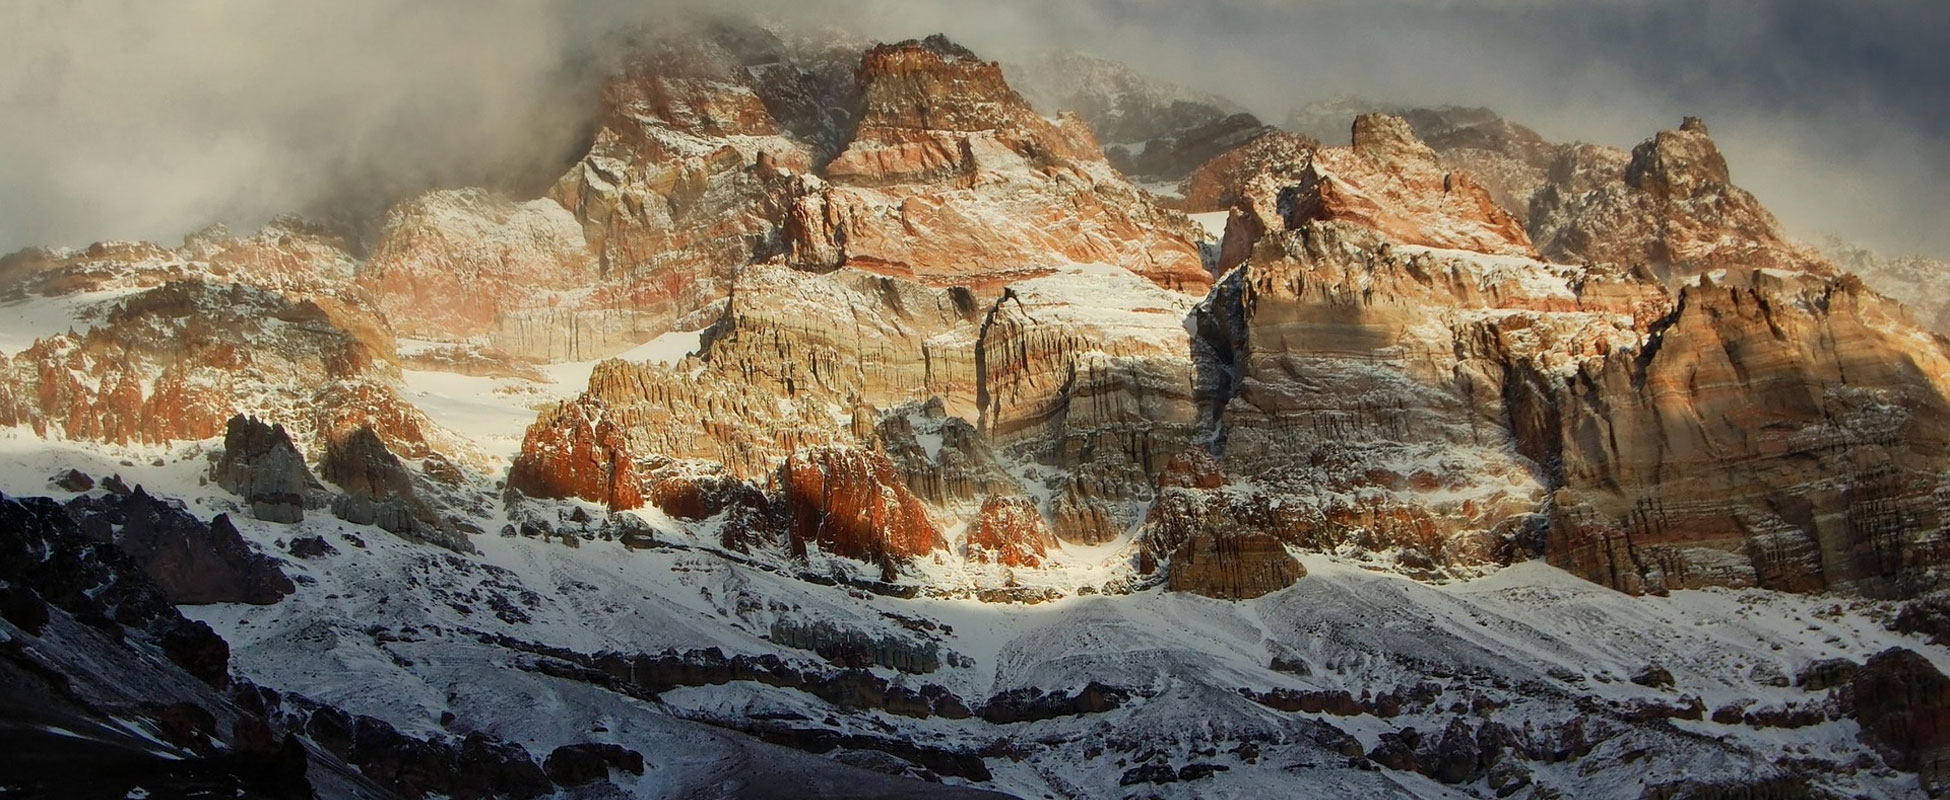 aconcagua-full-frontal-Mountain-IQ-1950x800